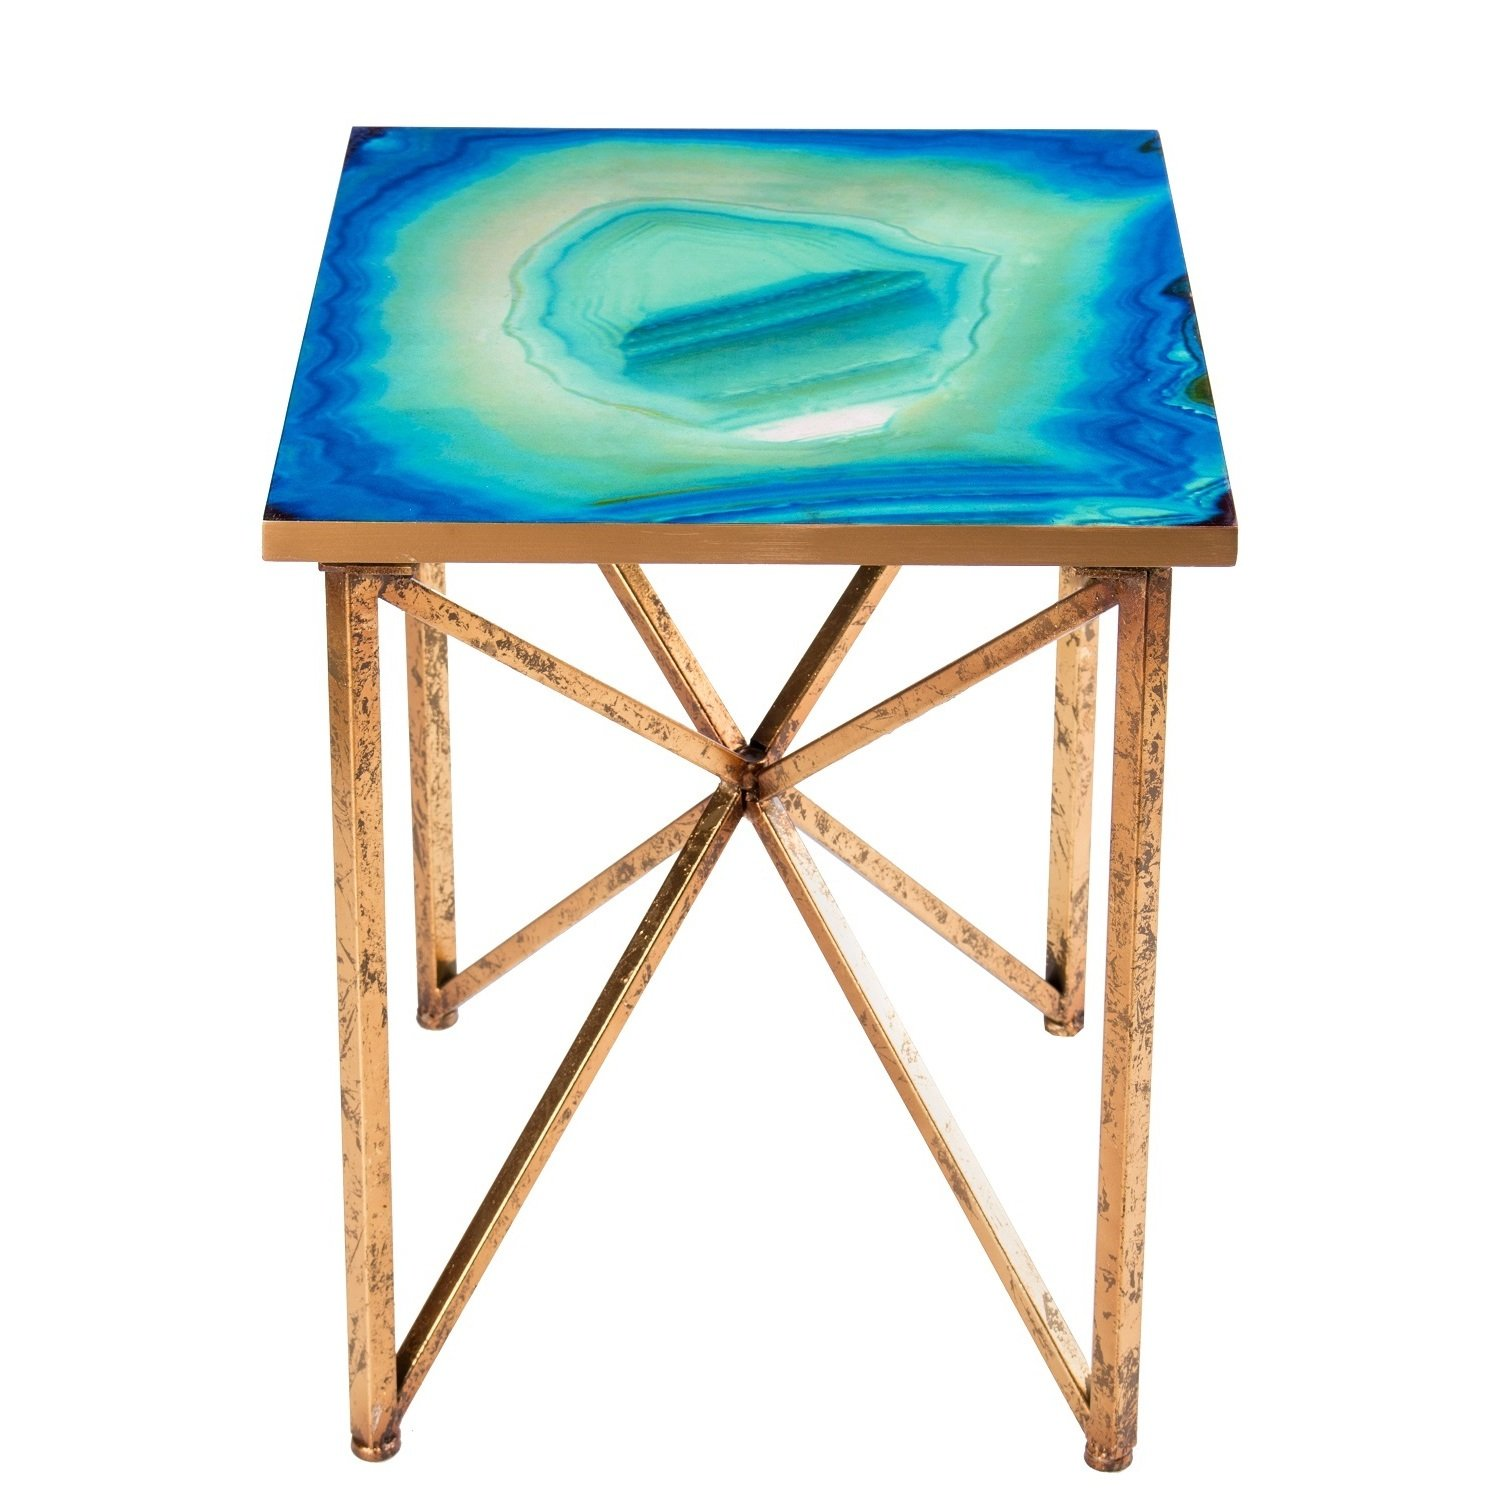 blue agate side table free shipping today glass accent metal home decor tall corner sofa tablecloth for inch round basic coffee end with charging station animal print chair